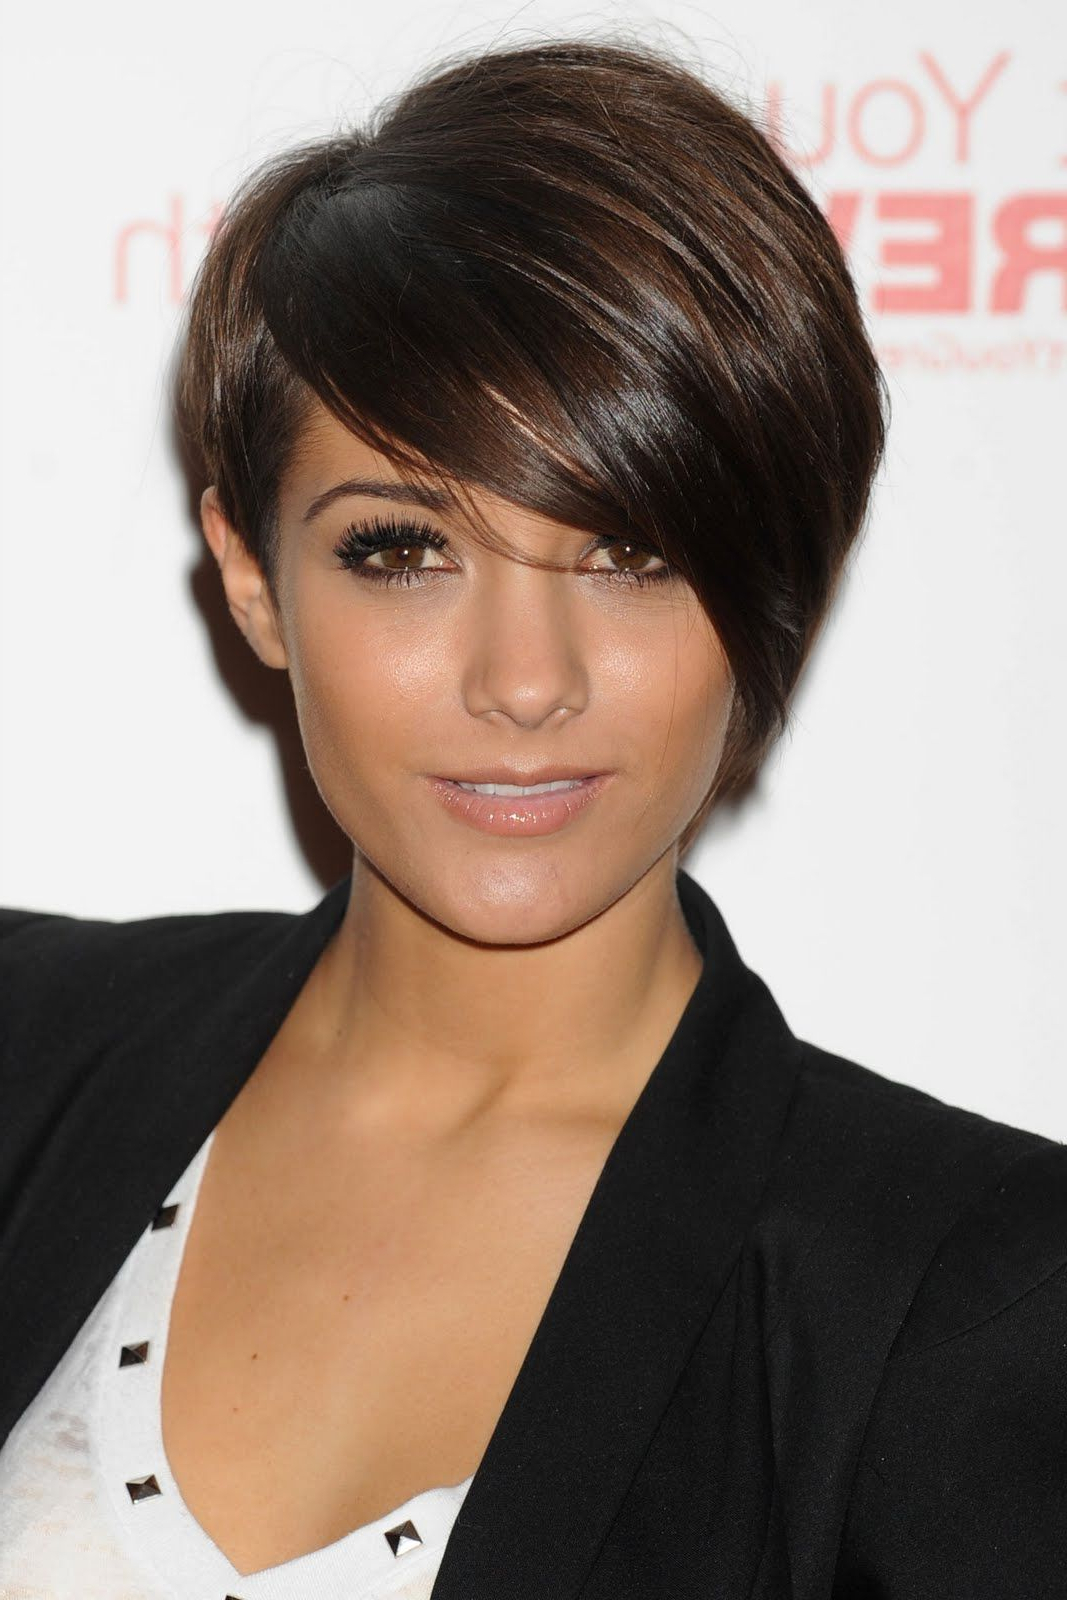 Edgy Short Haircuts Pixie | Hairstyles In 2018 | Pinterest | Hair Throughout Edgy Short Haircuts (View 12 of 25)